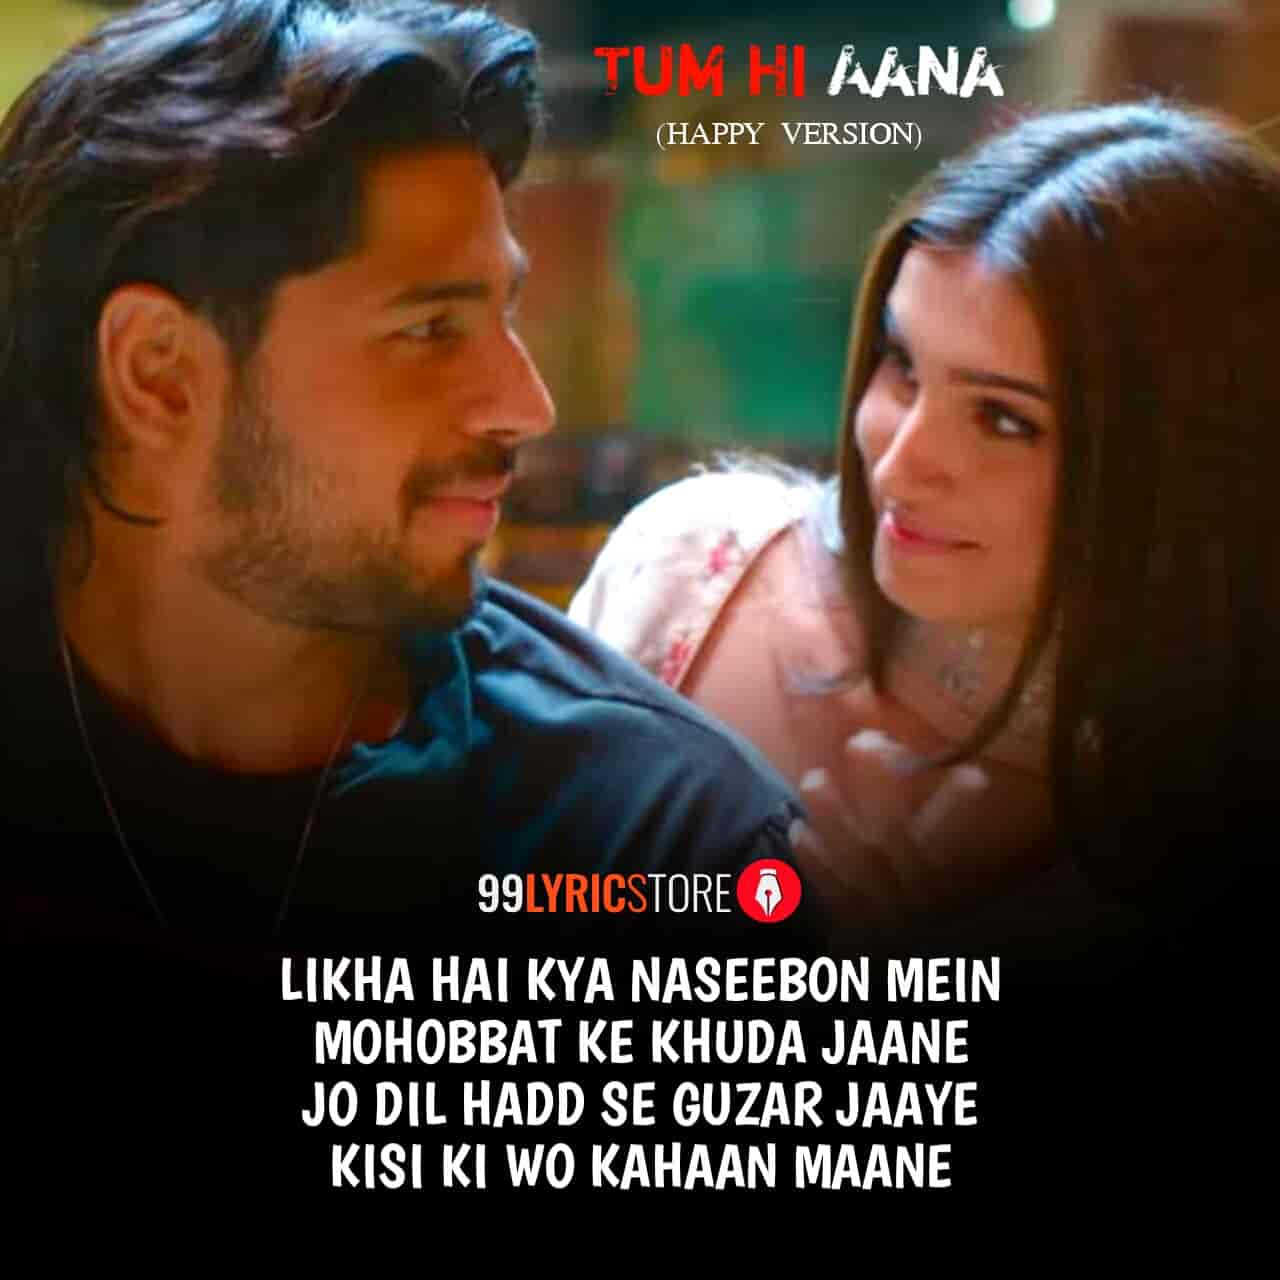 Jubin Nautiyal given his voice in the soulful much awaiting song Tum Hi Aana's Happy Version from Siddharth Malhotra, Tara Sutaria and Riteish Desmukh starrer movie 'Marjaavaan'. This sad song music given by Payal Dev while this song Tum Hi Aana Lyrics are penned by Kunaal Vermaa. This song produced by Aditya Dev and presented by World's first channel T-Series.